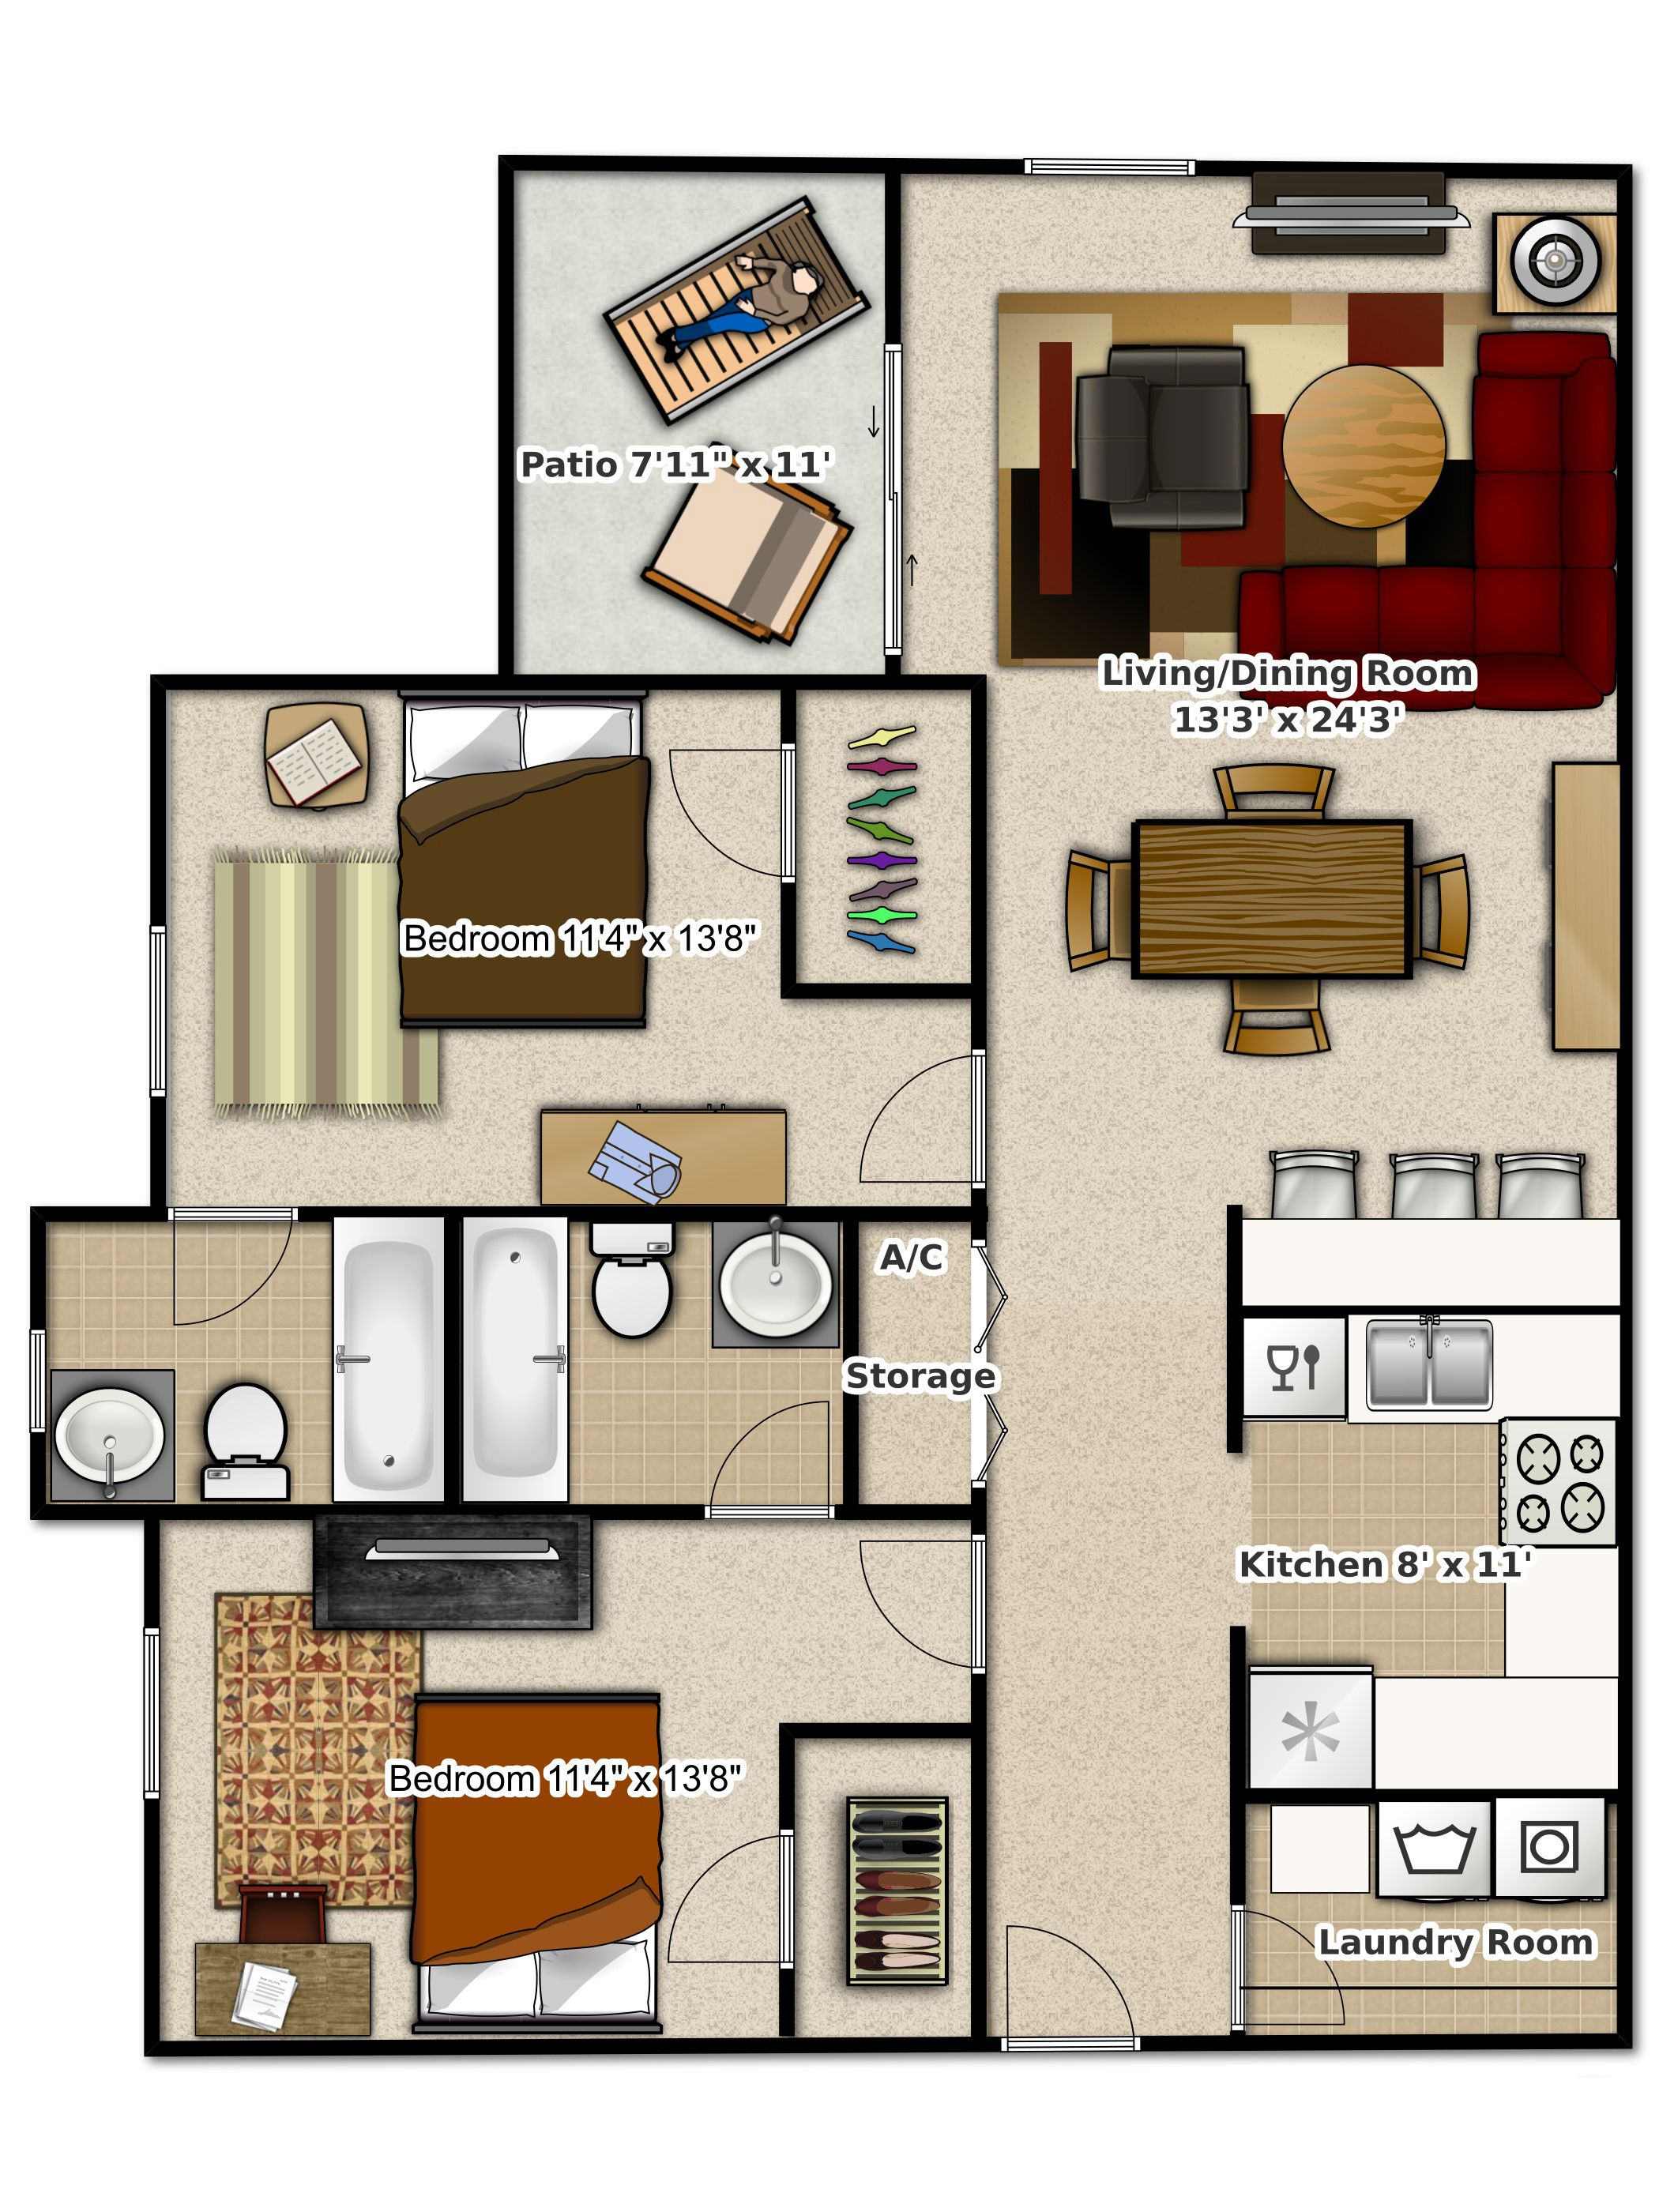 2 bedroom apartments in gainesville florida. phase 2 - bedroom apartment at #stoneridge apartments, #gainesville, fl apartments in gainesville florida ,